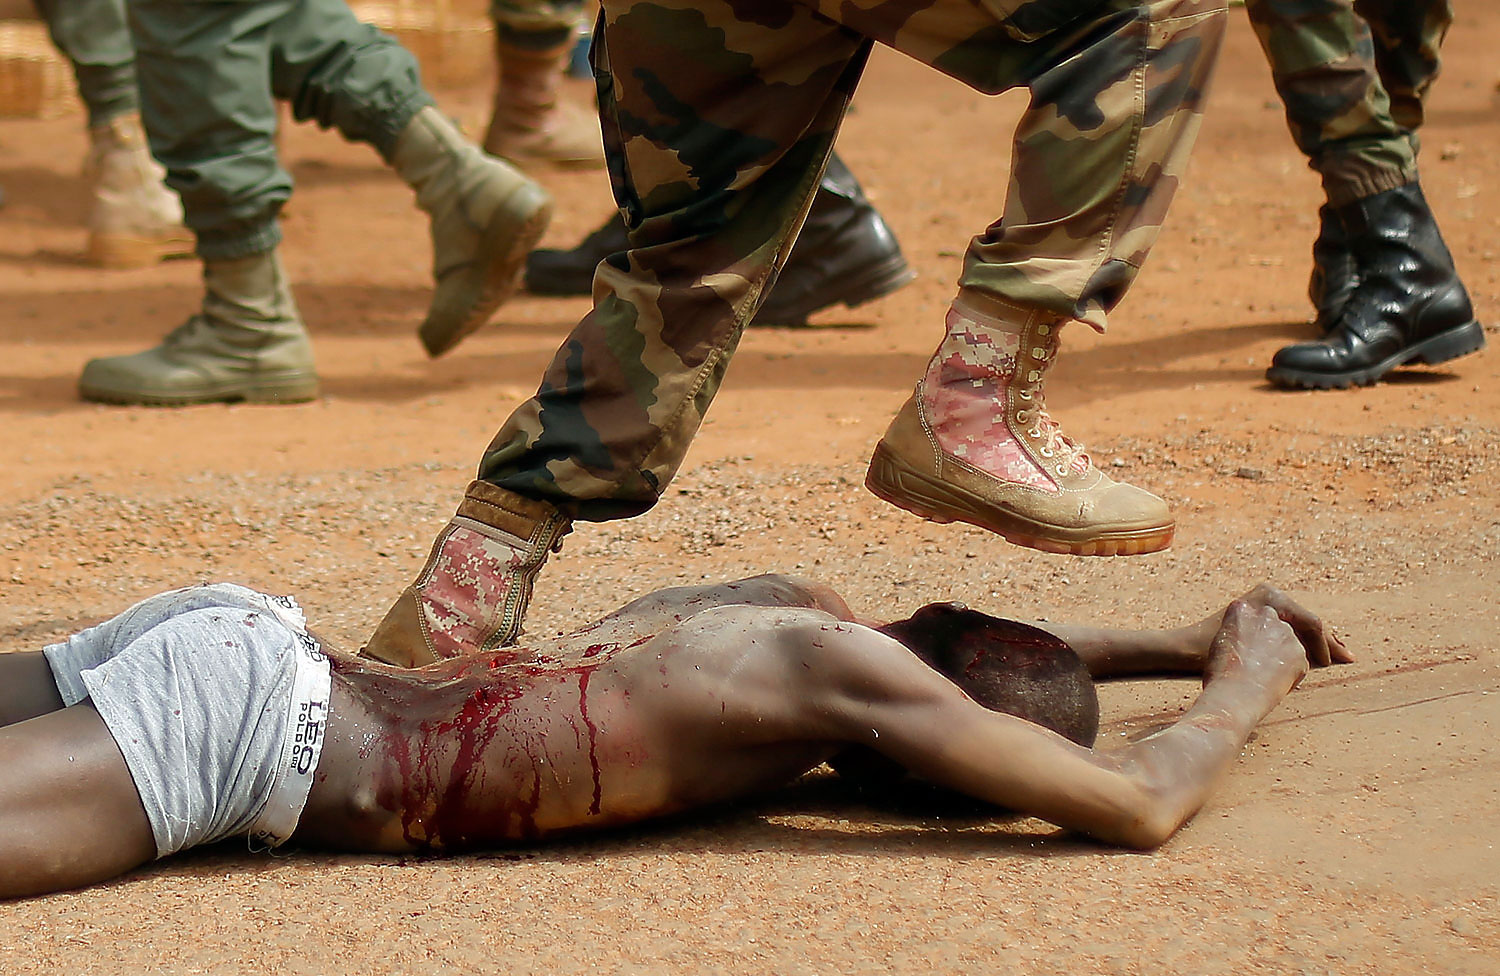 A Central African Armed Forces officer jumps on the lifeless body of a suspected Muslim Seleka militiaman moments after Central African Republic Interim President Catherine Samba-Panza addressed the troops in Bangui, Feb. 5, 2014.